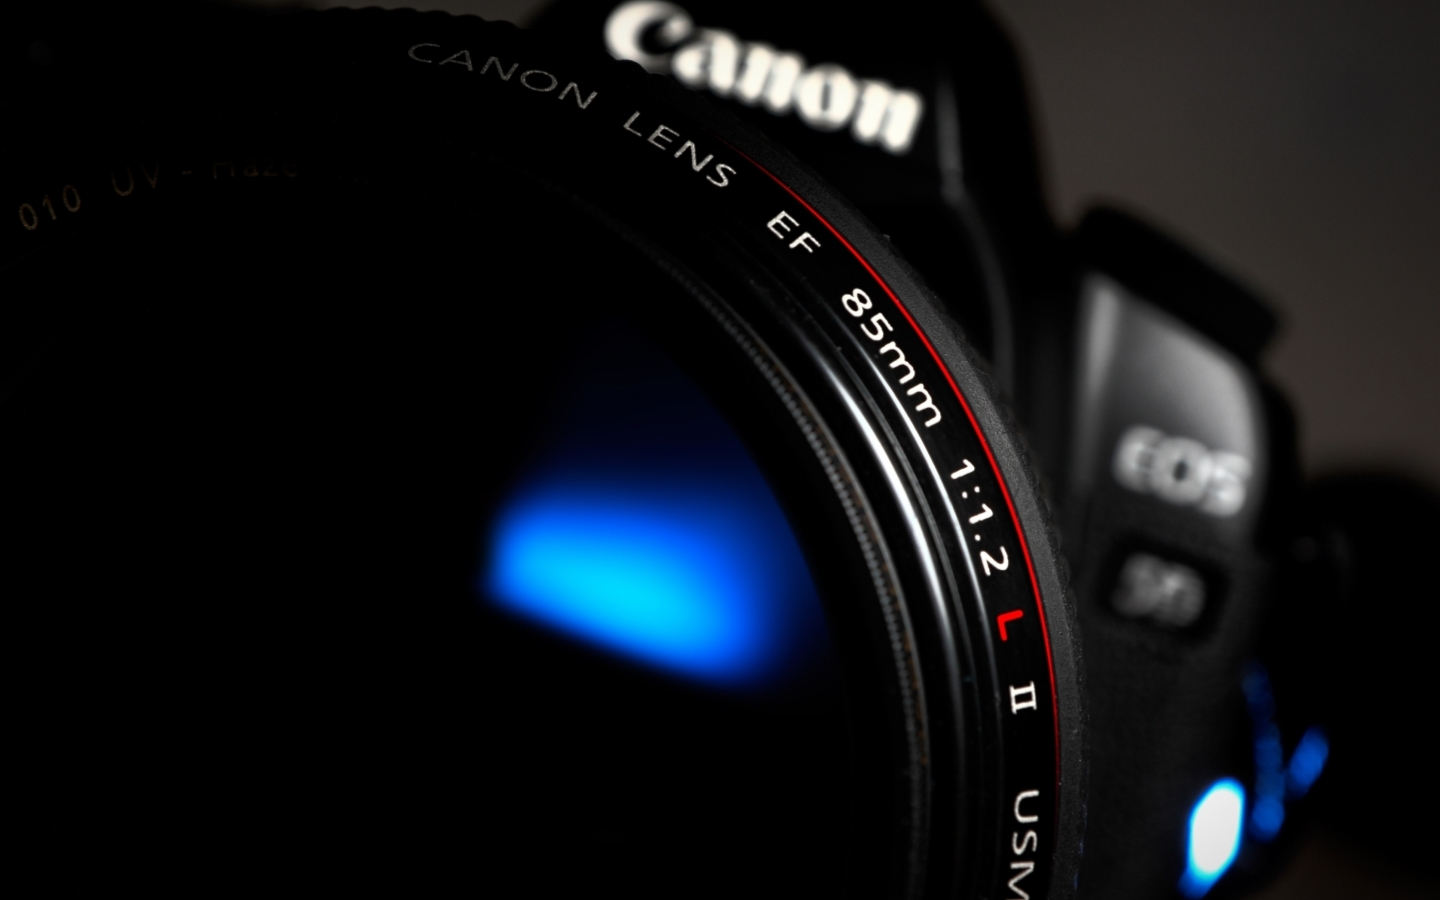 canon-lens-macbook-pro-wallpaper-hd.jpg